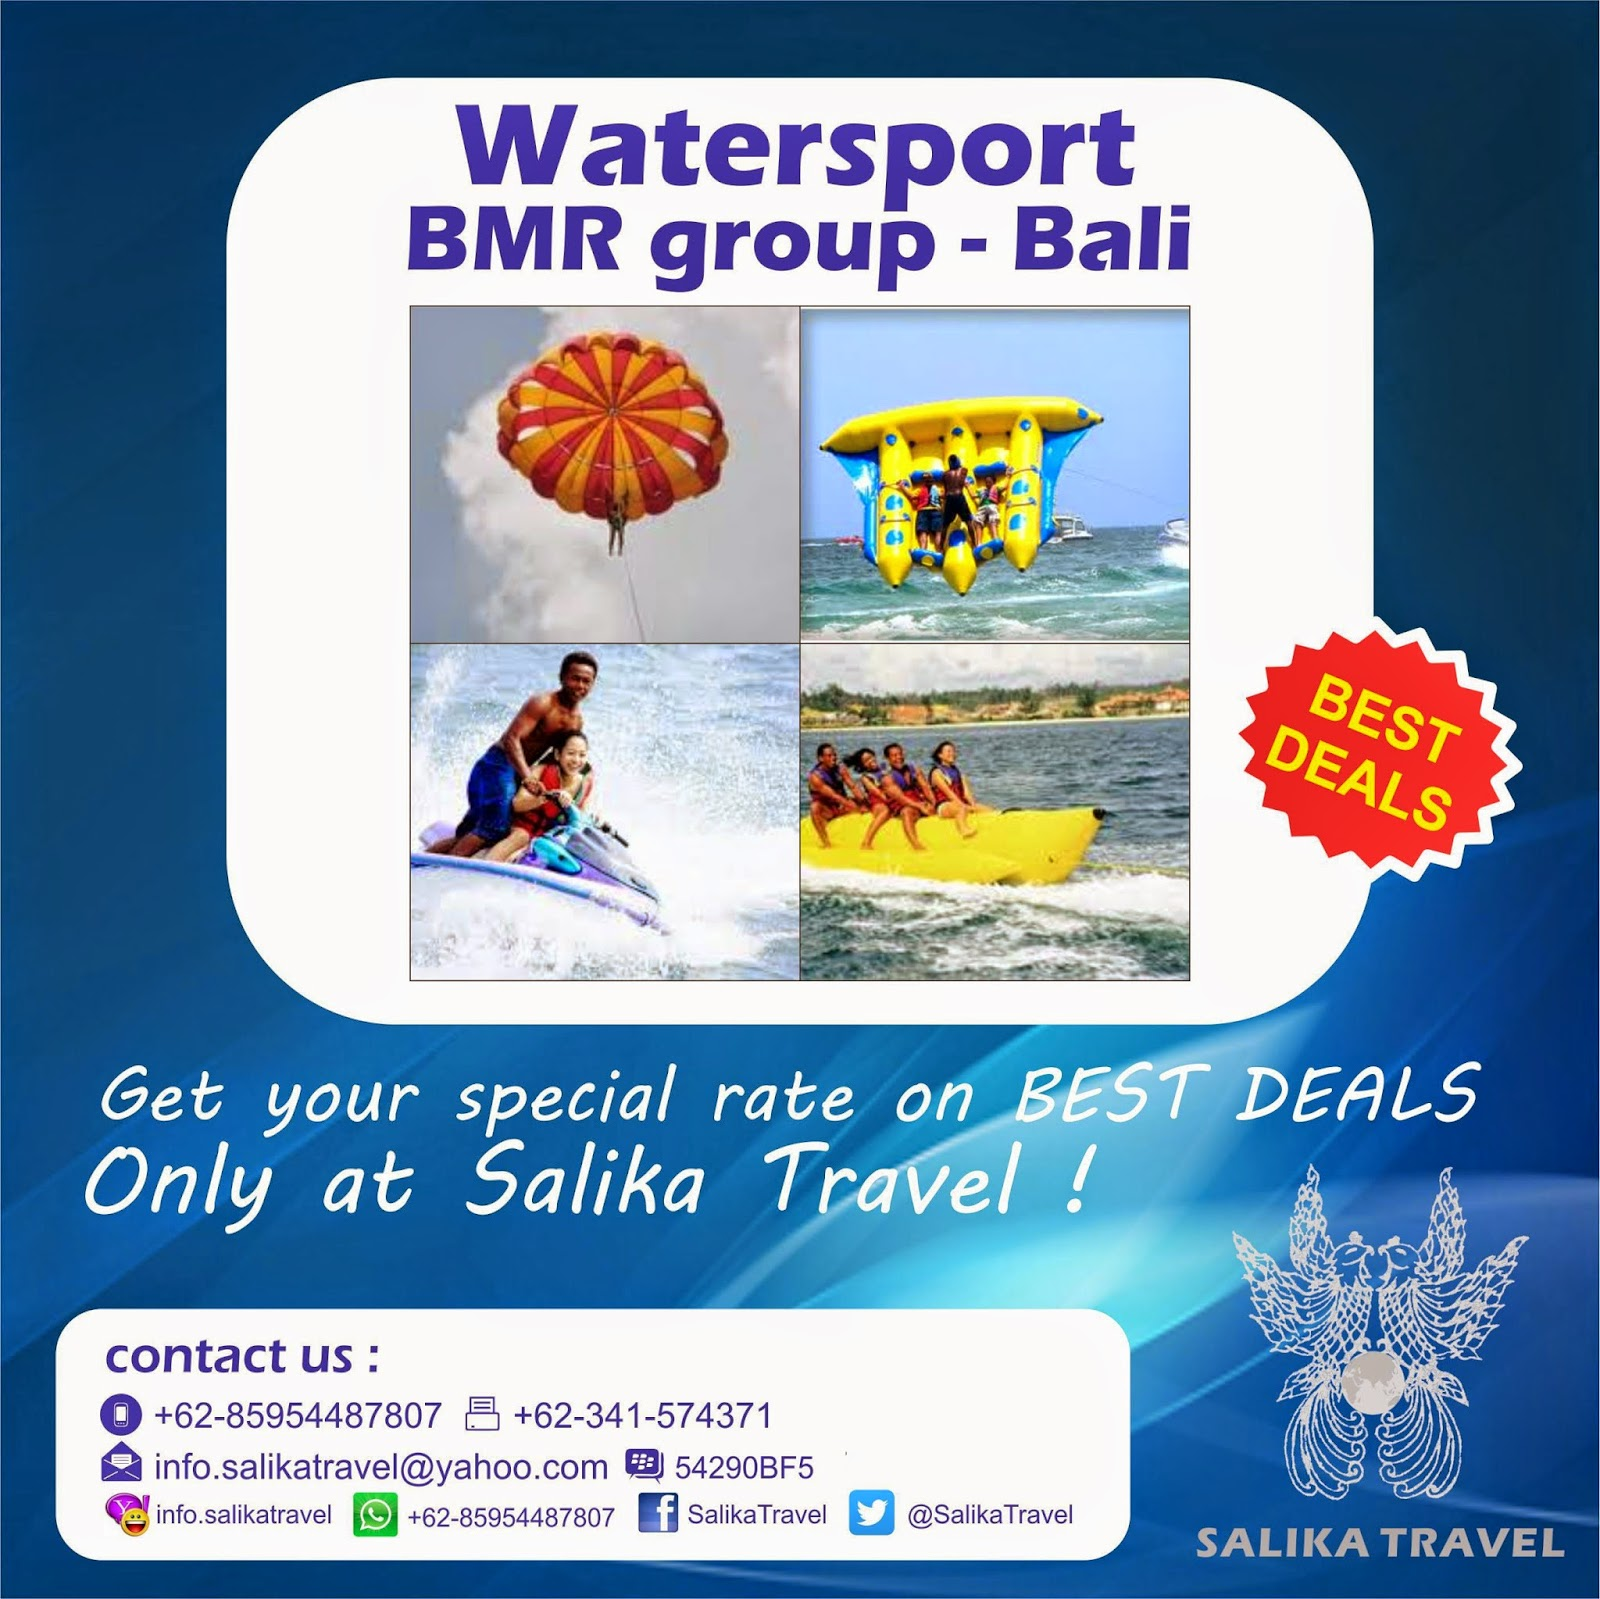 Bali Watersport - Salika Travel